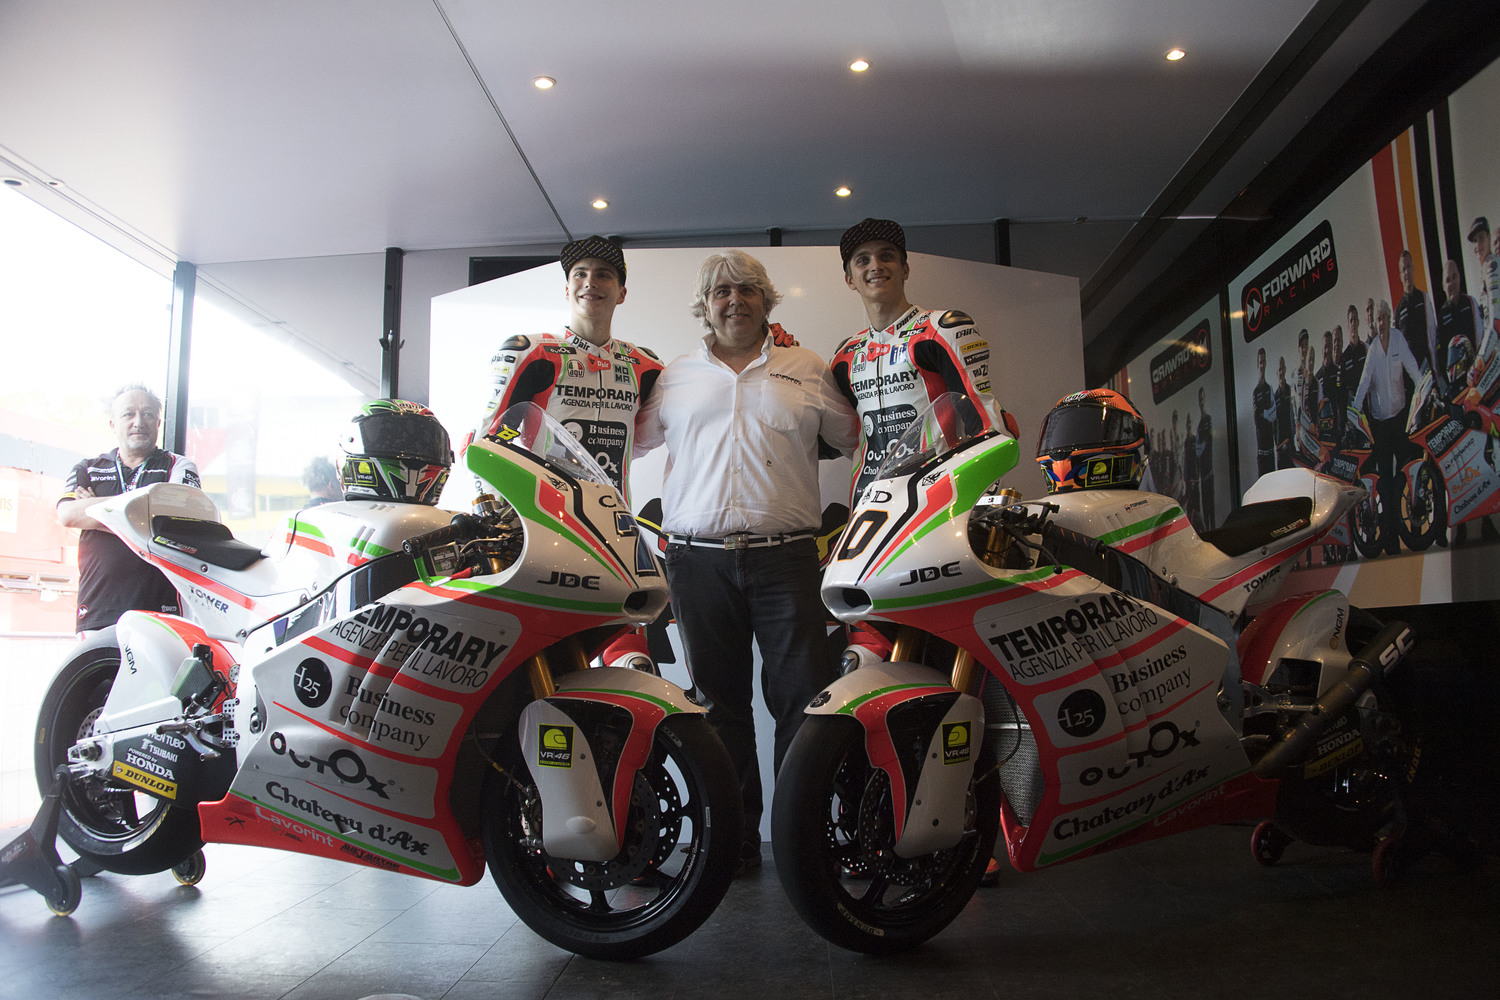 Forward Racing unveils Mugello special livery